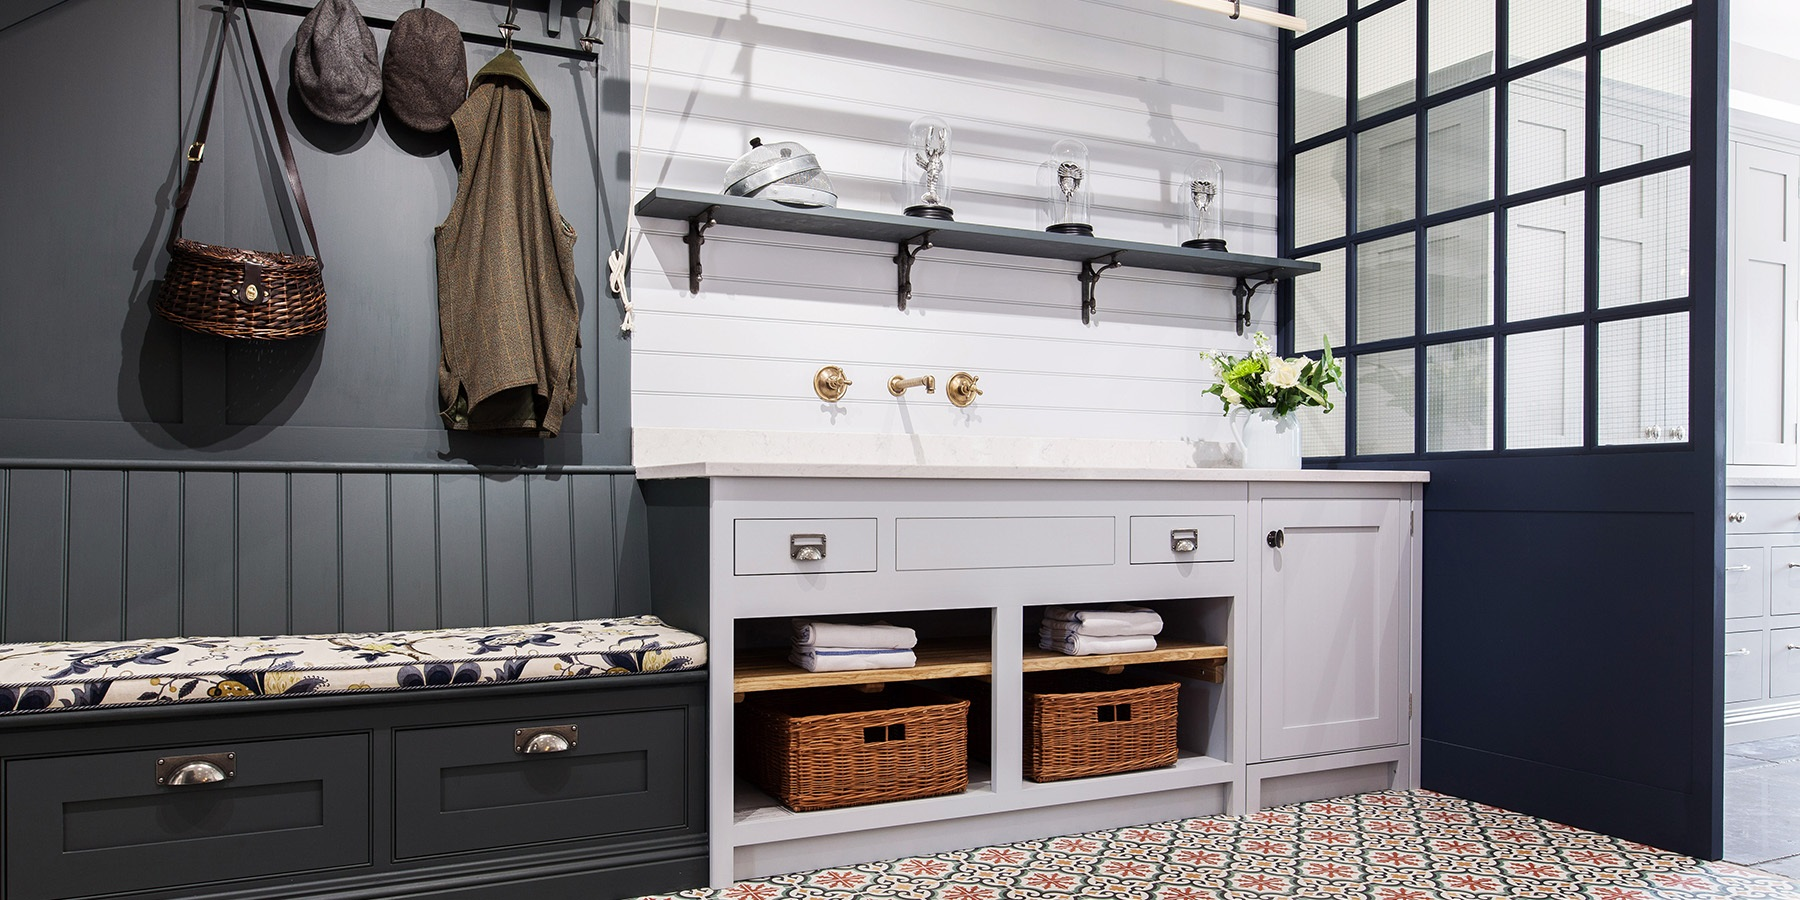 Bespoke Utility & Bootroom - Burlanes handmade utility room furniture with storage, handmade banquette seating with drawers and shaker style wall panelling with coat hooks.